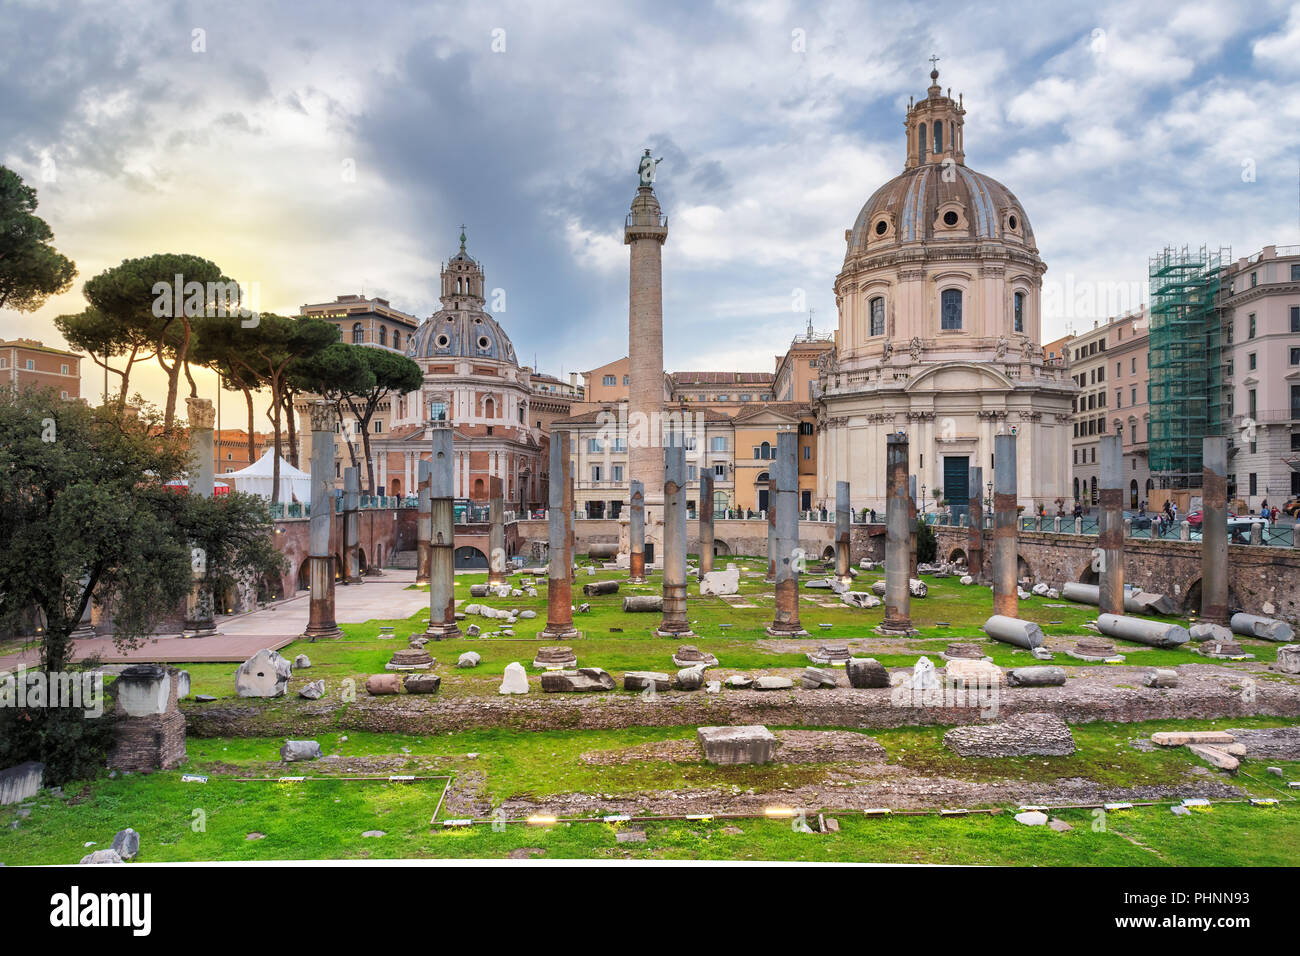 Sunset view of Rome, Italy.  The Trajan's Forum and Basilica Ulpia, in Rome, Italy. - Stock Image